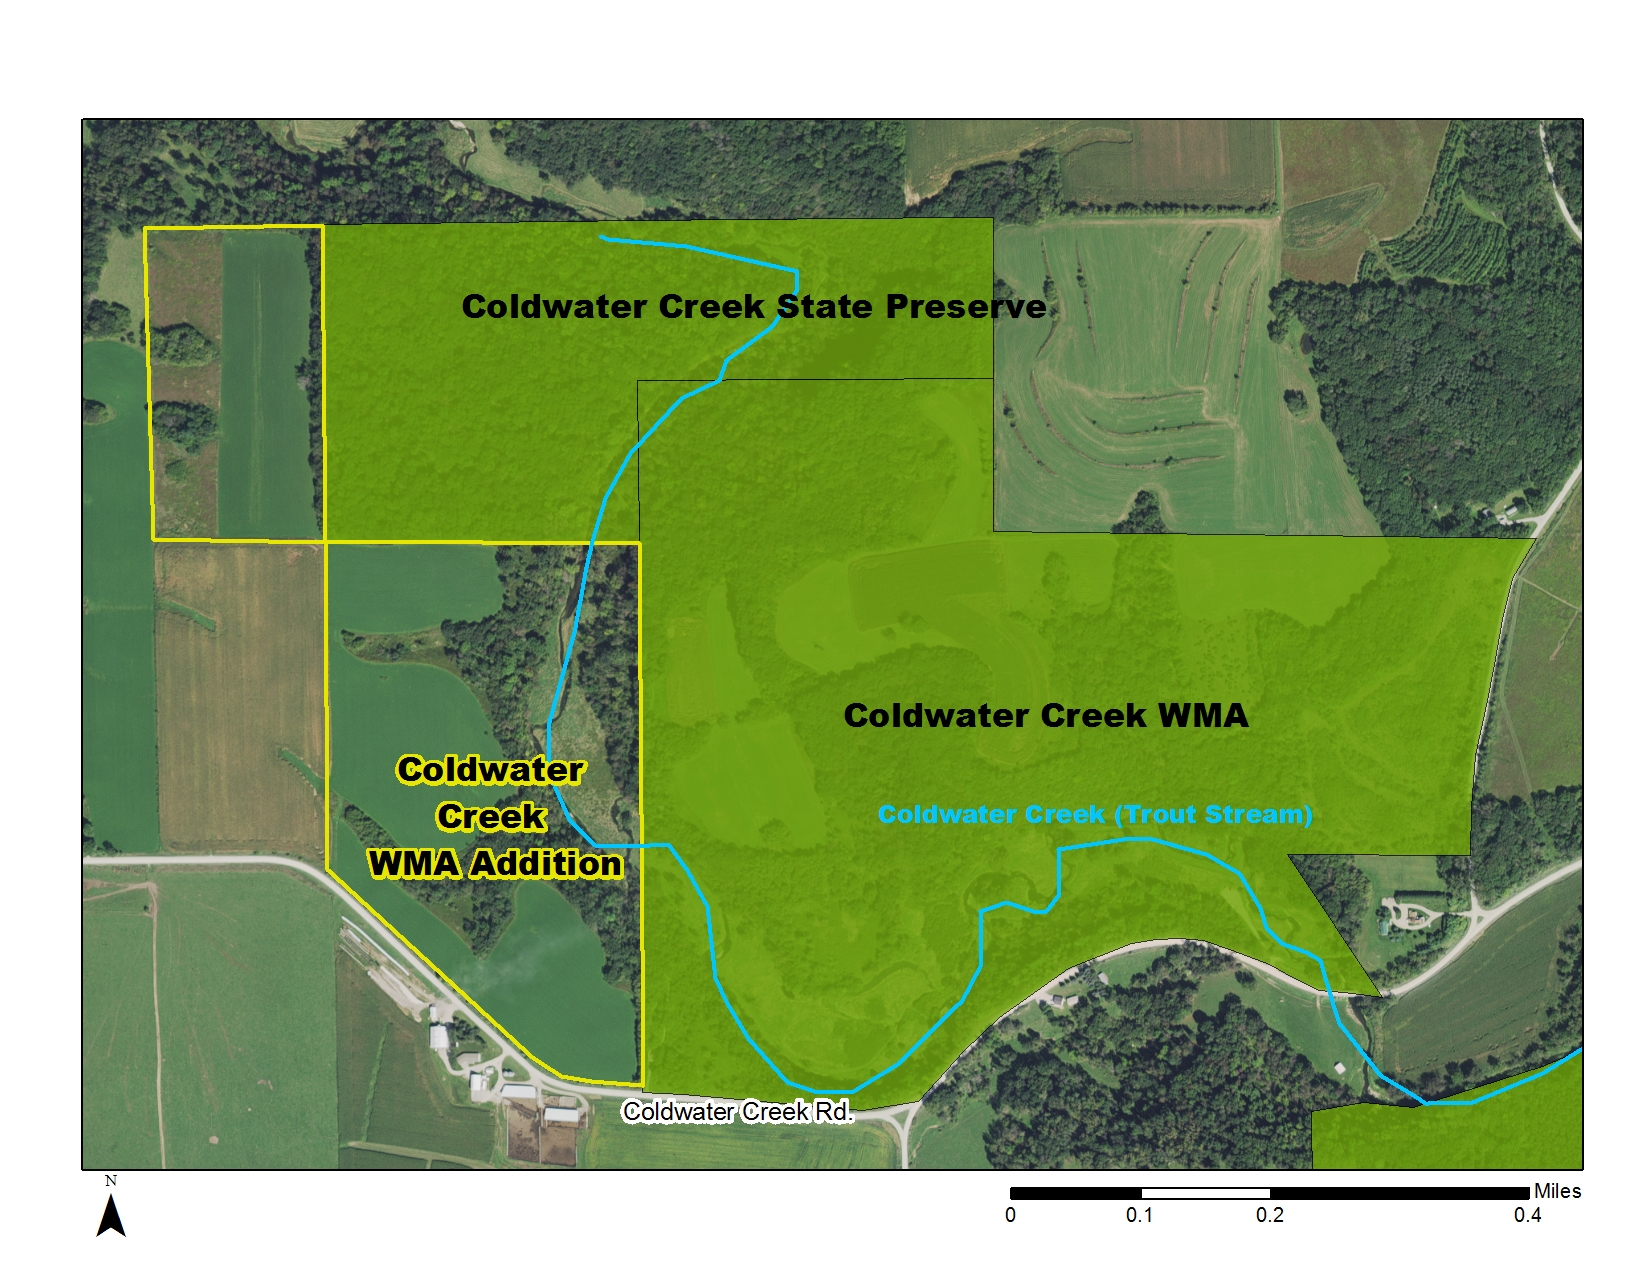 Coldwater Creek WMA Addition